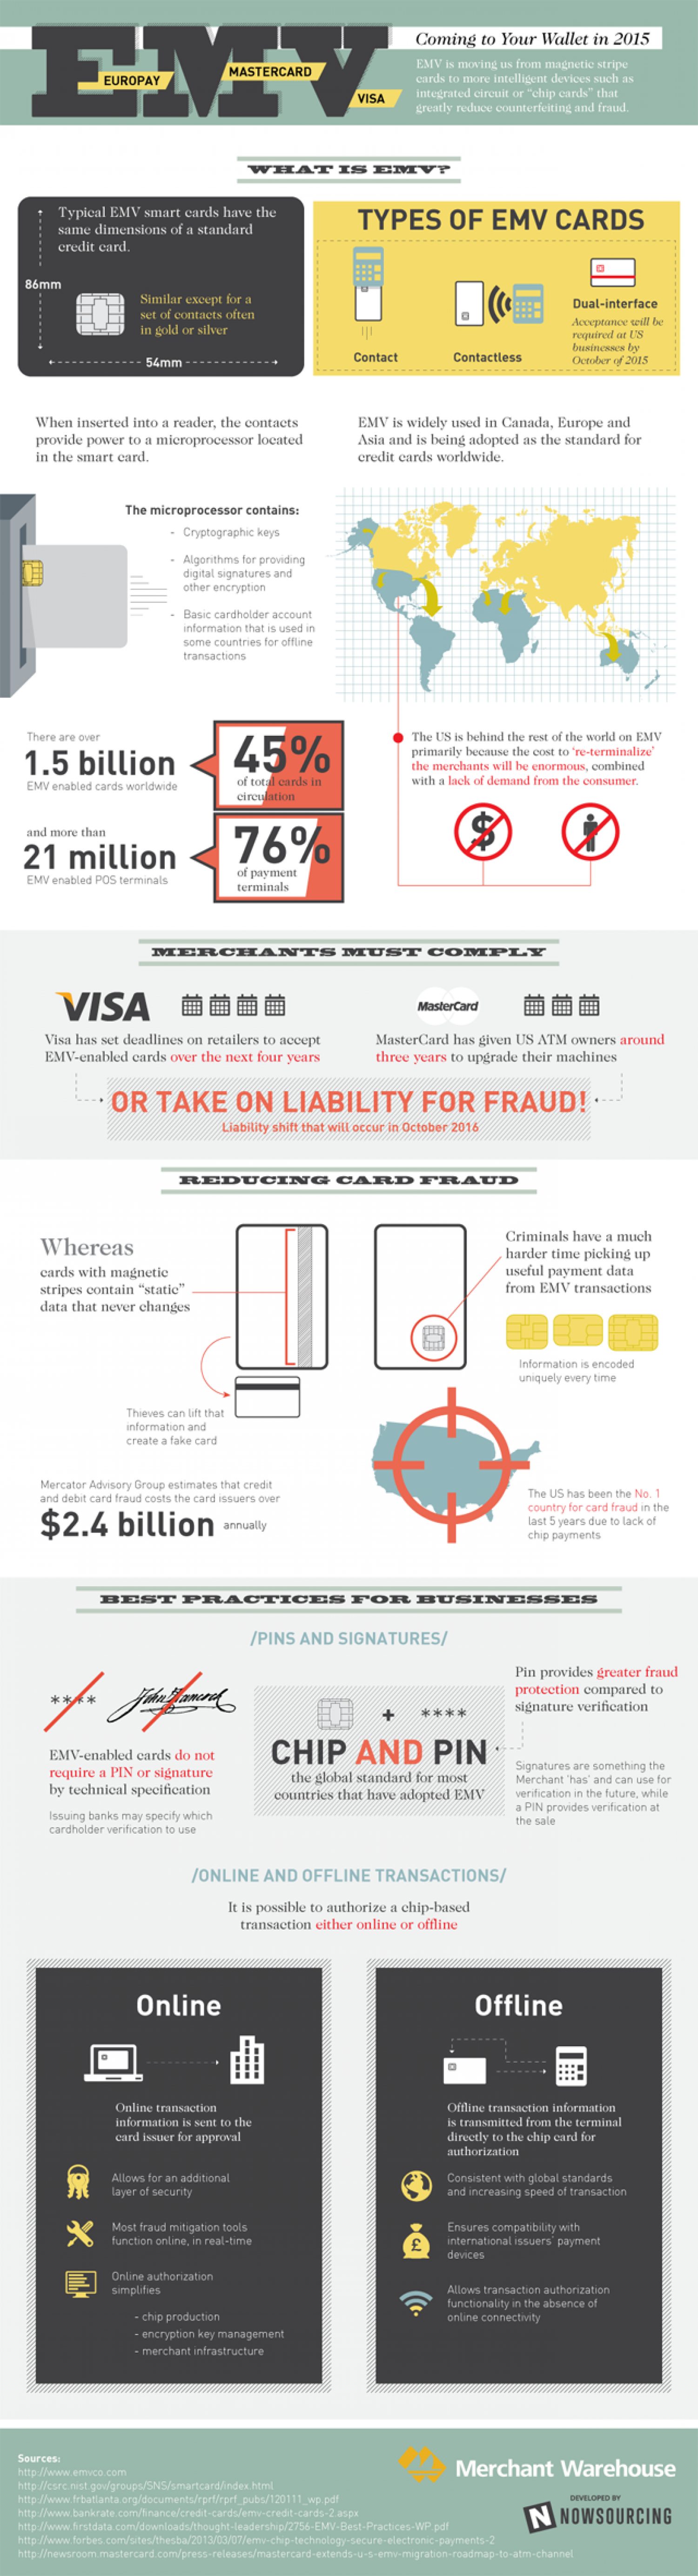 EMV Coming to Your Wallet Infographic